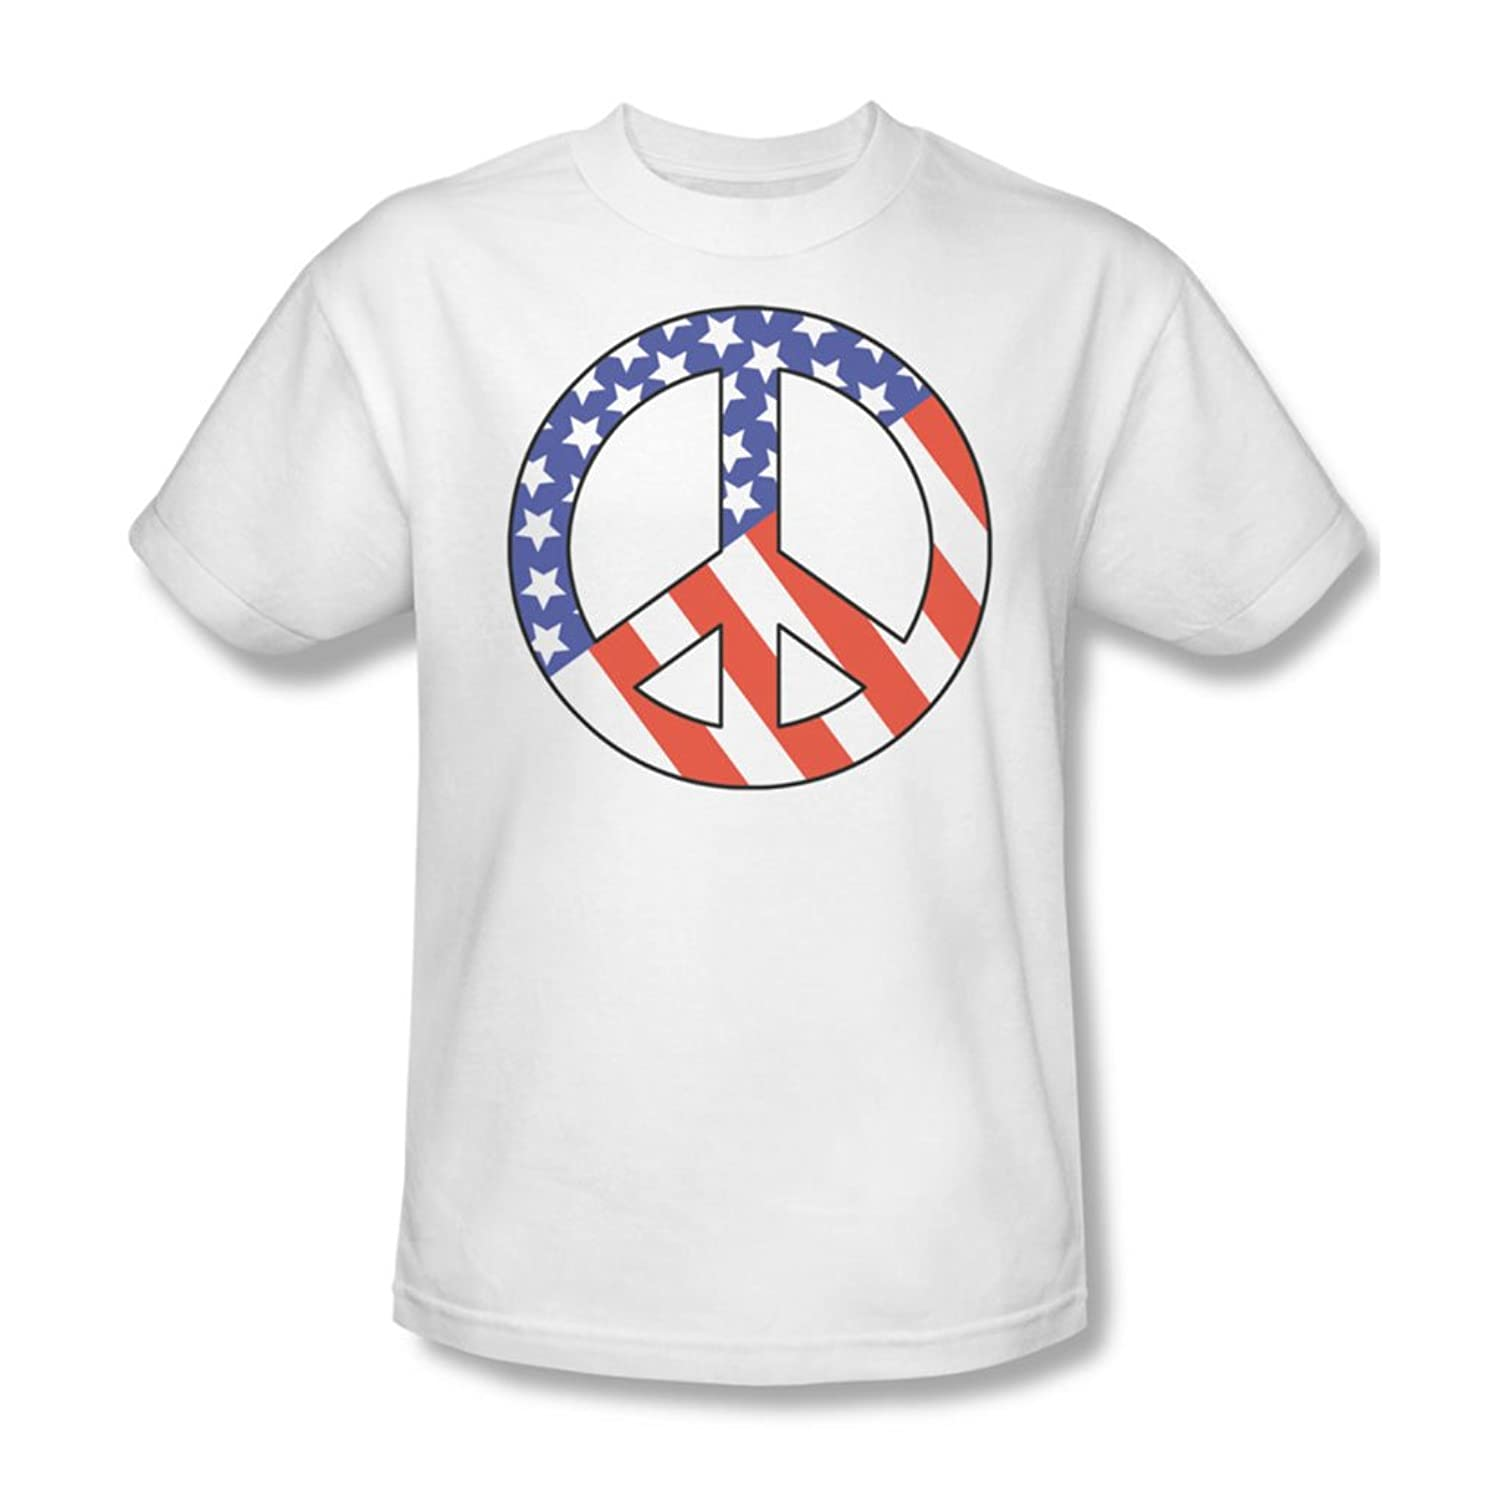 Patriot Peace - Mens T-Shirt In White